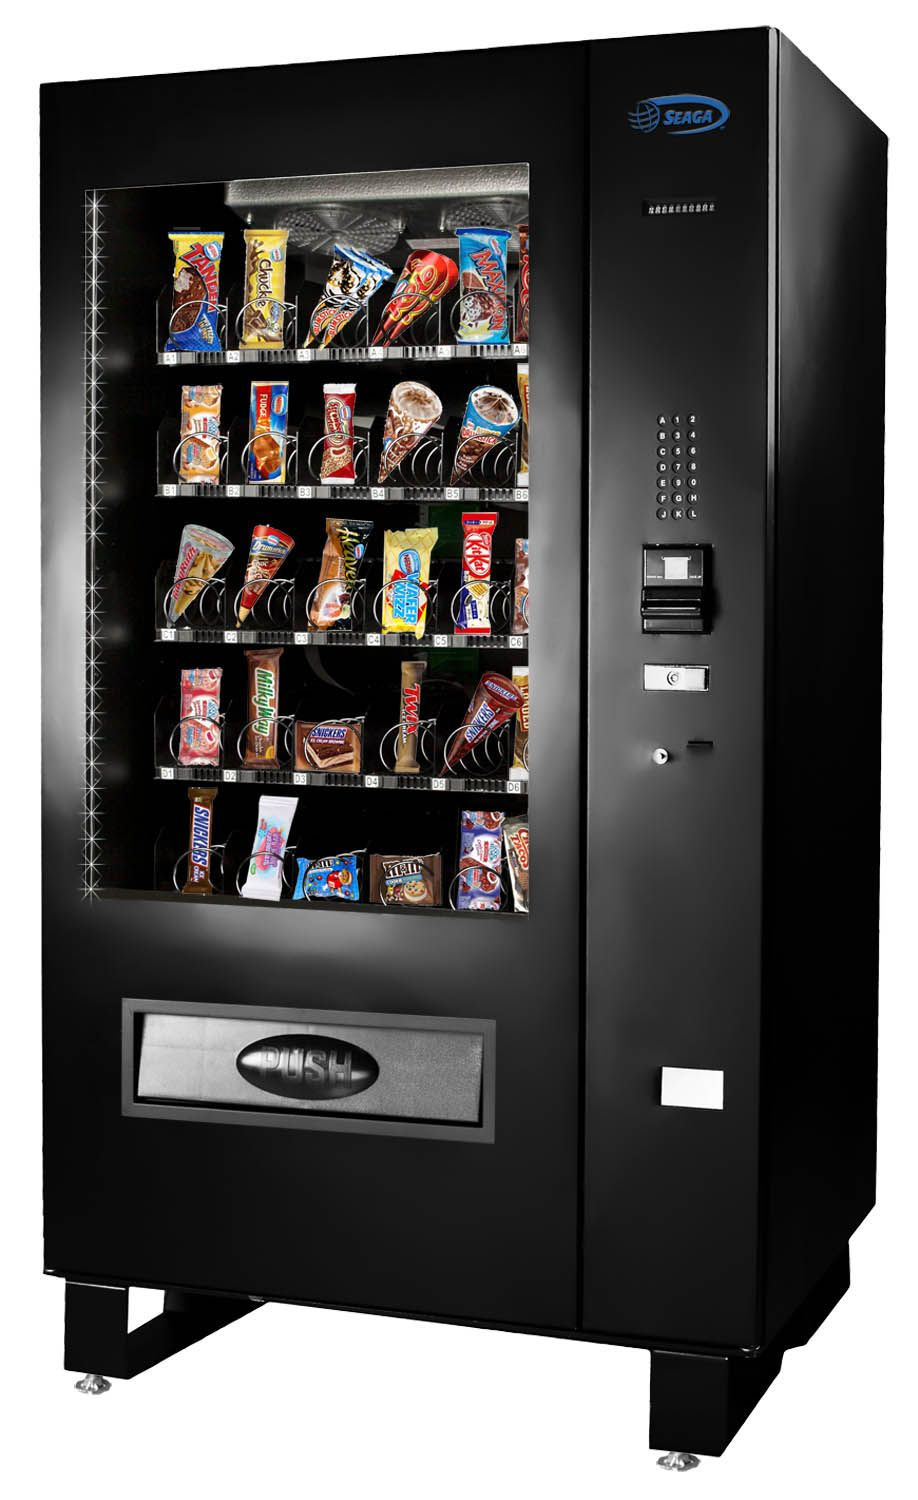 Hair accessories vending machines - Offering Frozen Food And Ice Cream From A Vending Machine Opens Profit Possibilities In Any Location